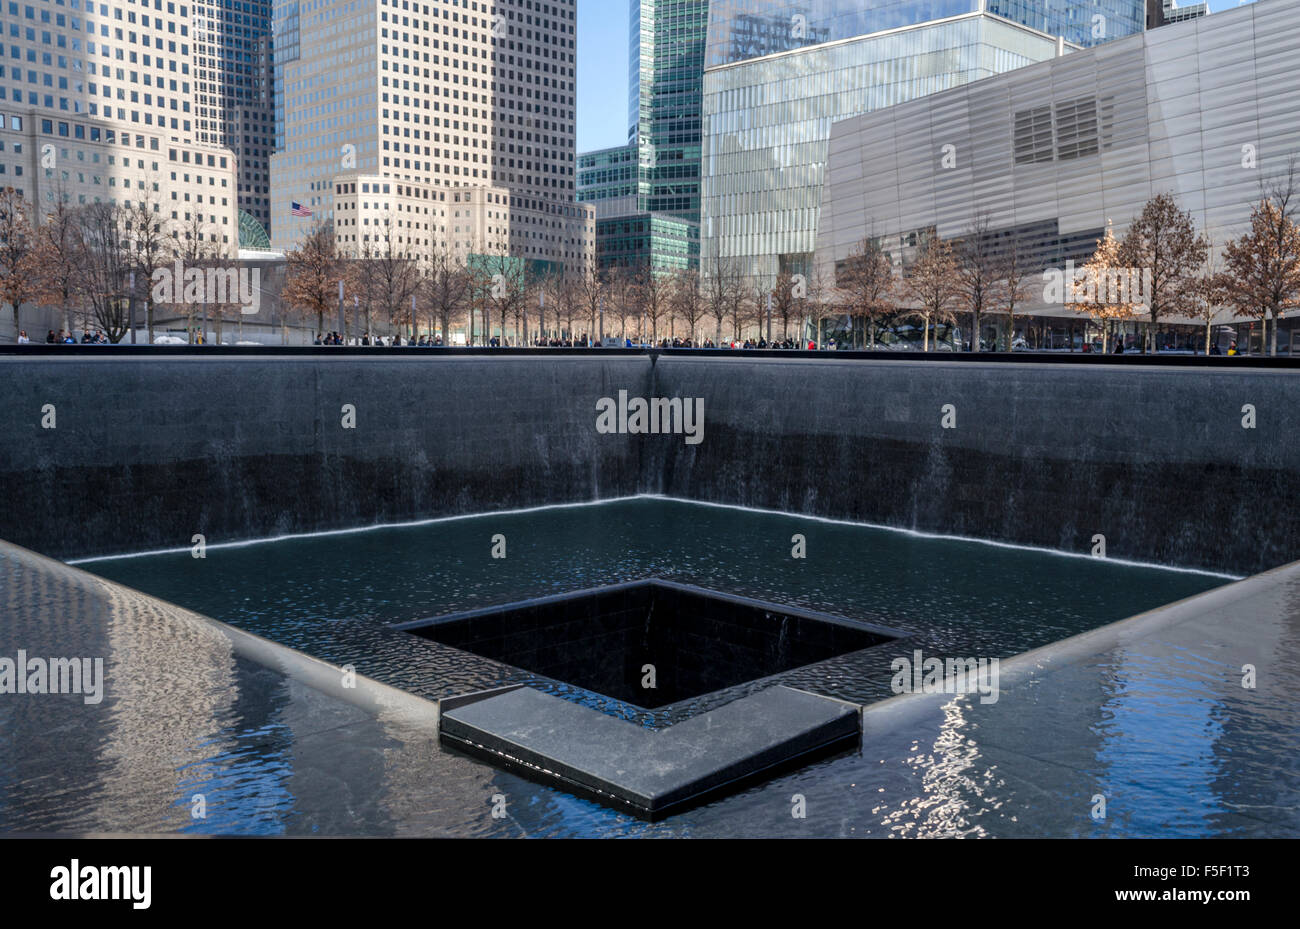 9 11 Memorial North Pool At The Site Of The World Trade Centre Stock Photo Royalty Free Image